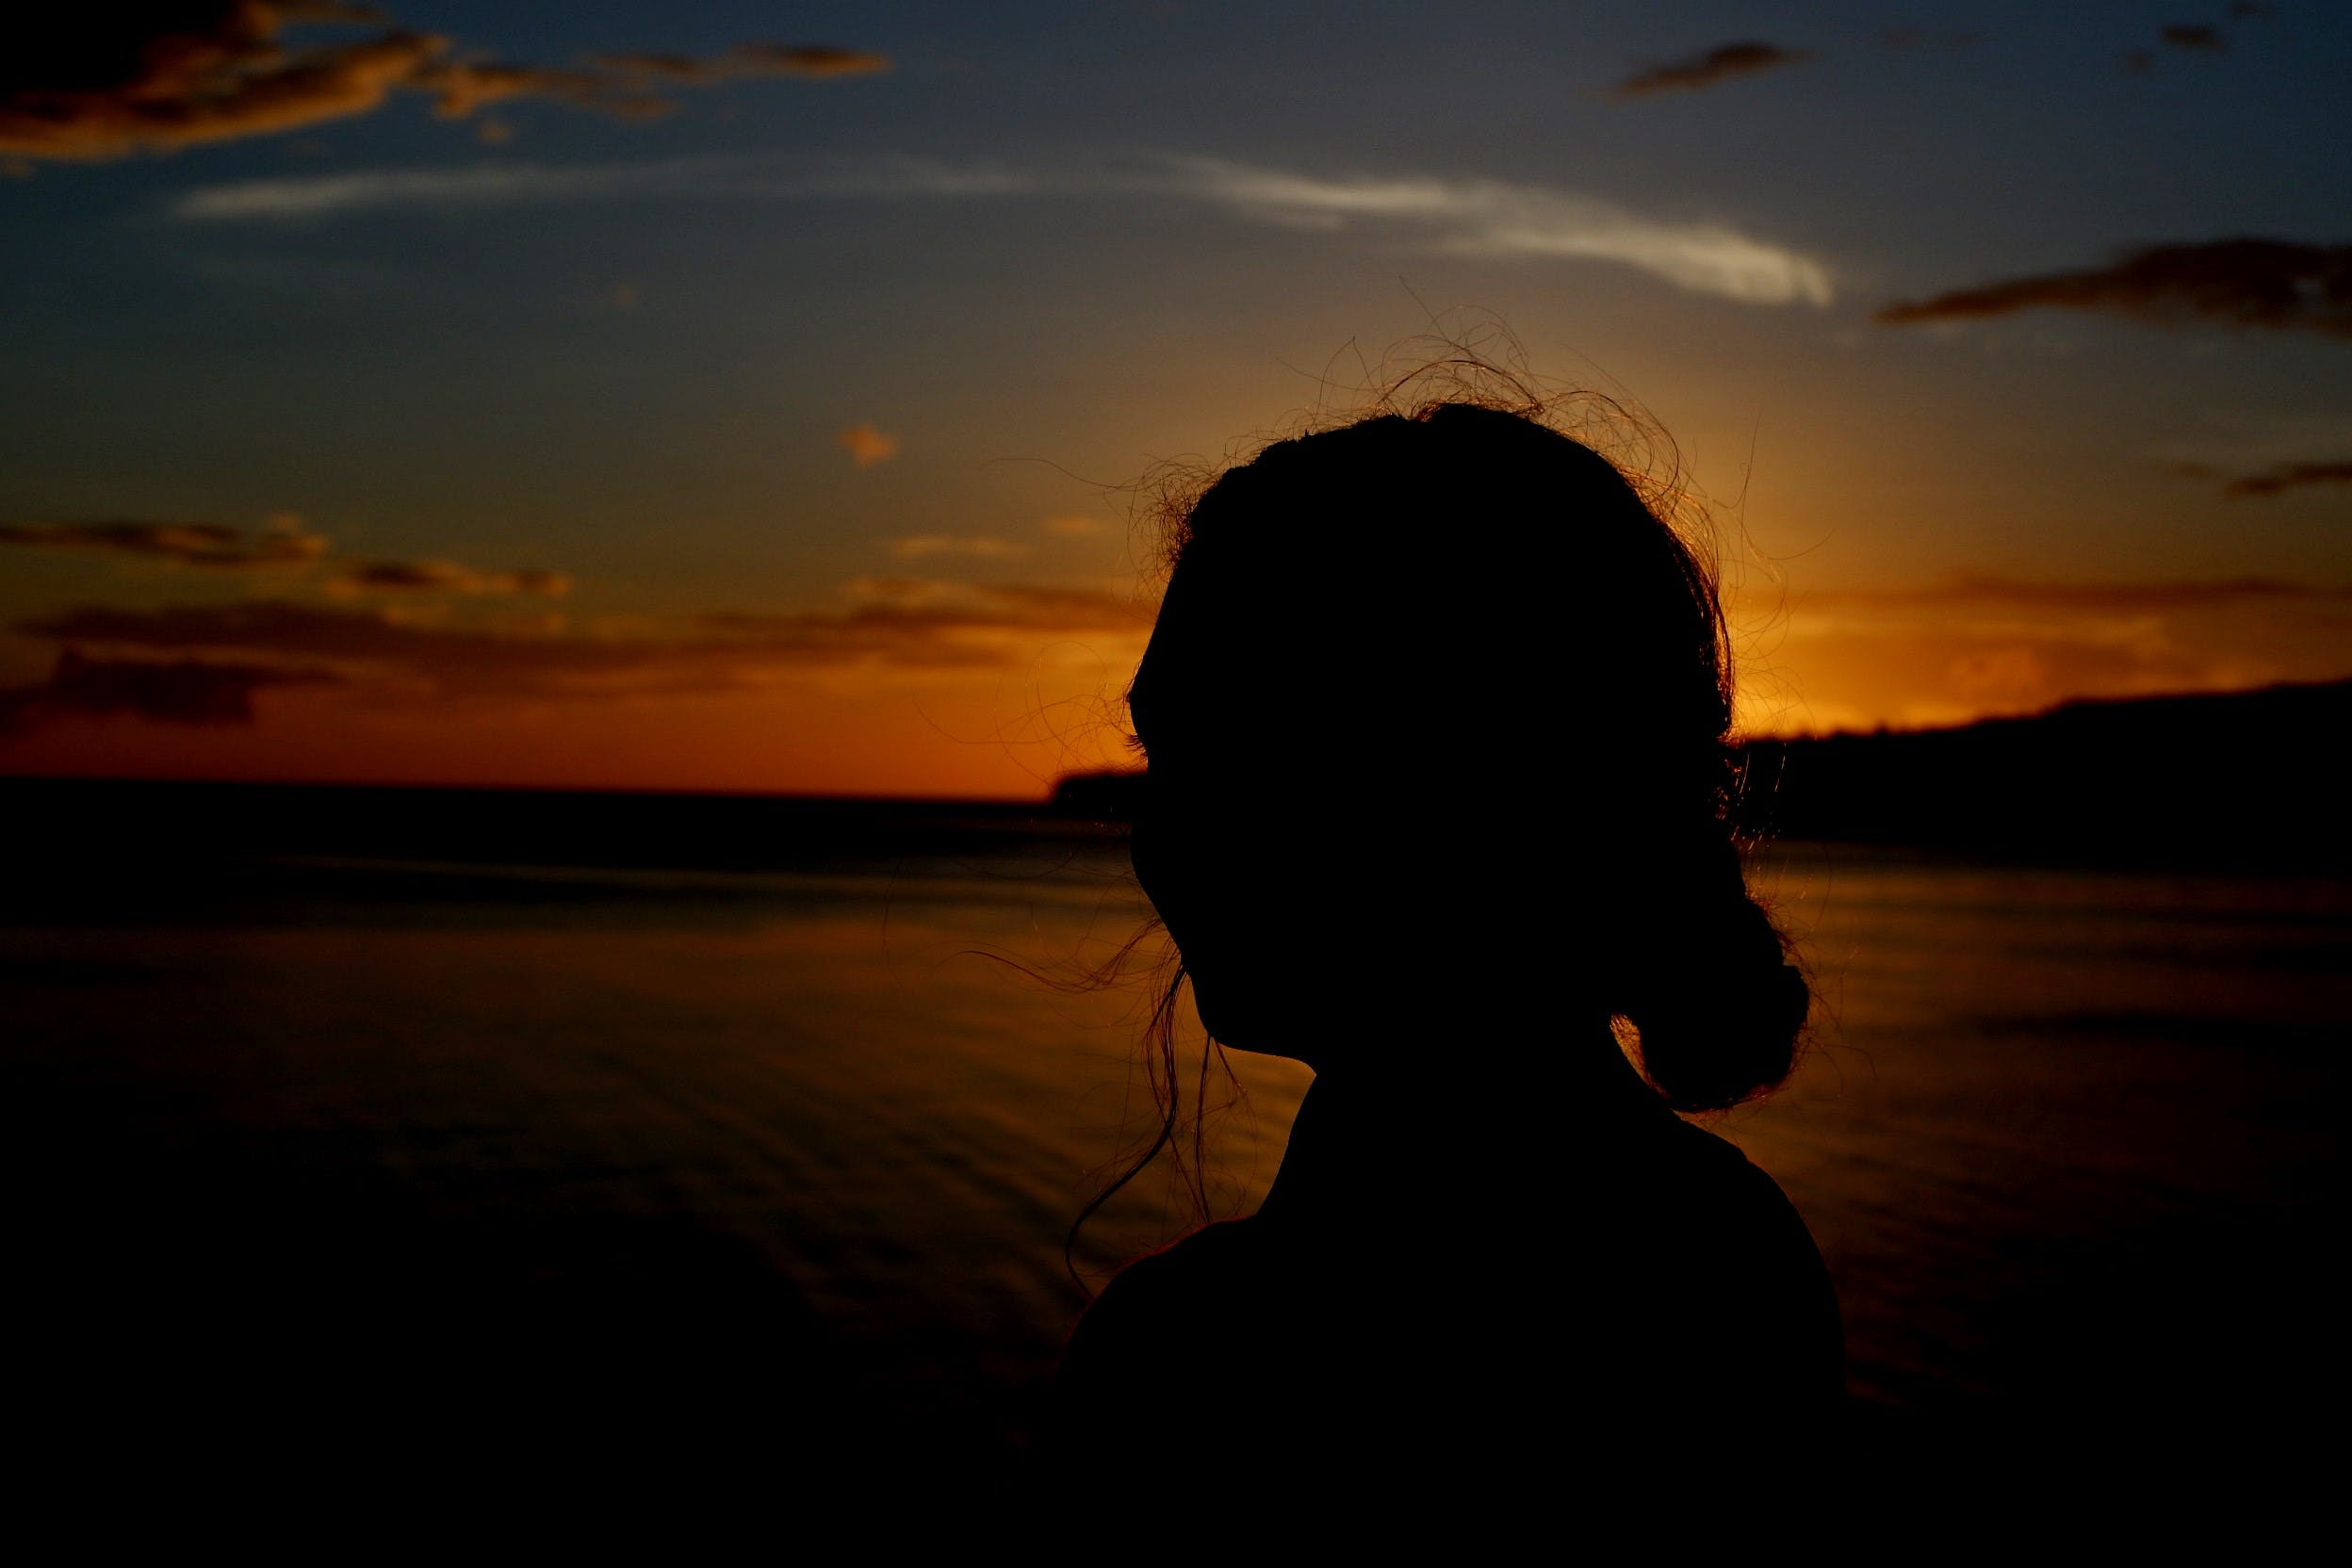 Gratis arkivbilde med #gylden, #sunset #girl #scenery # beautiful